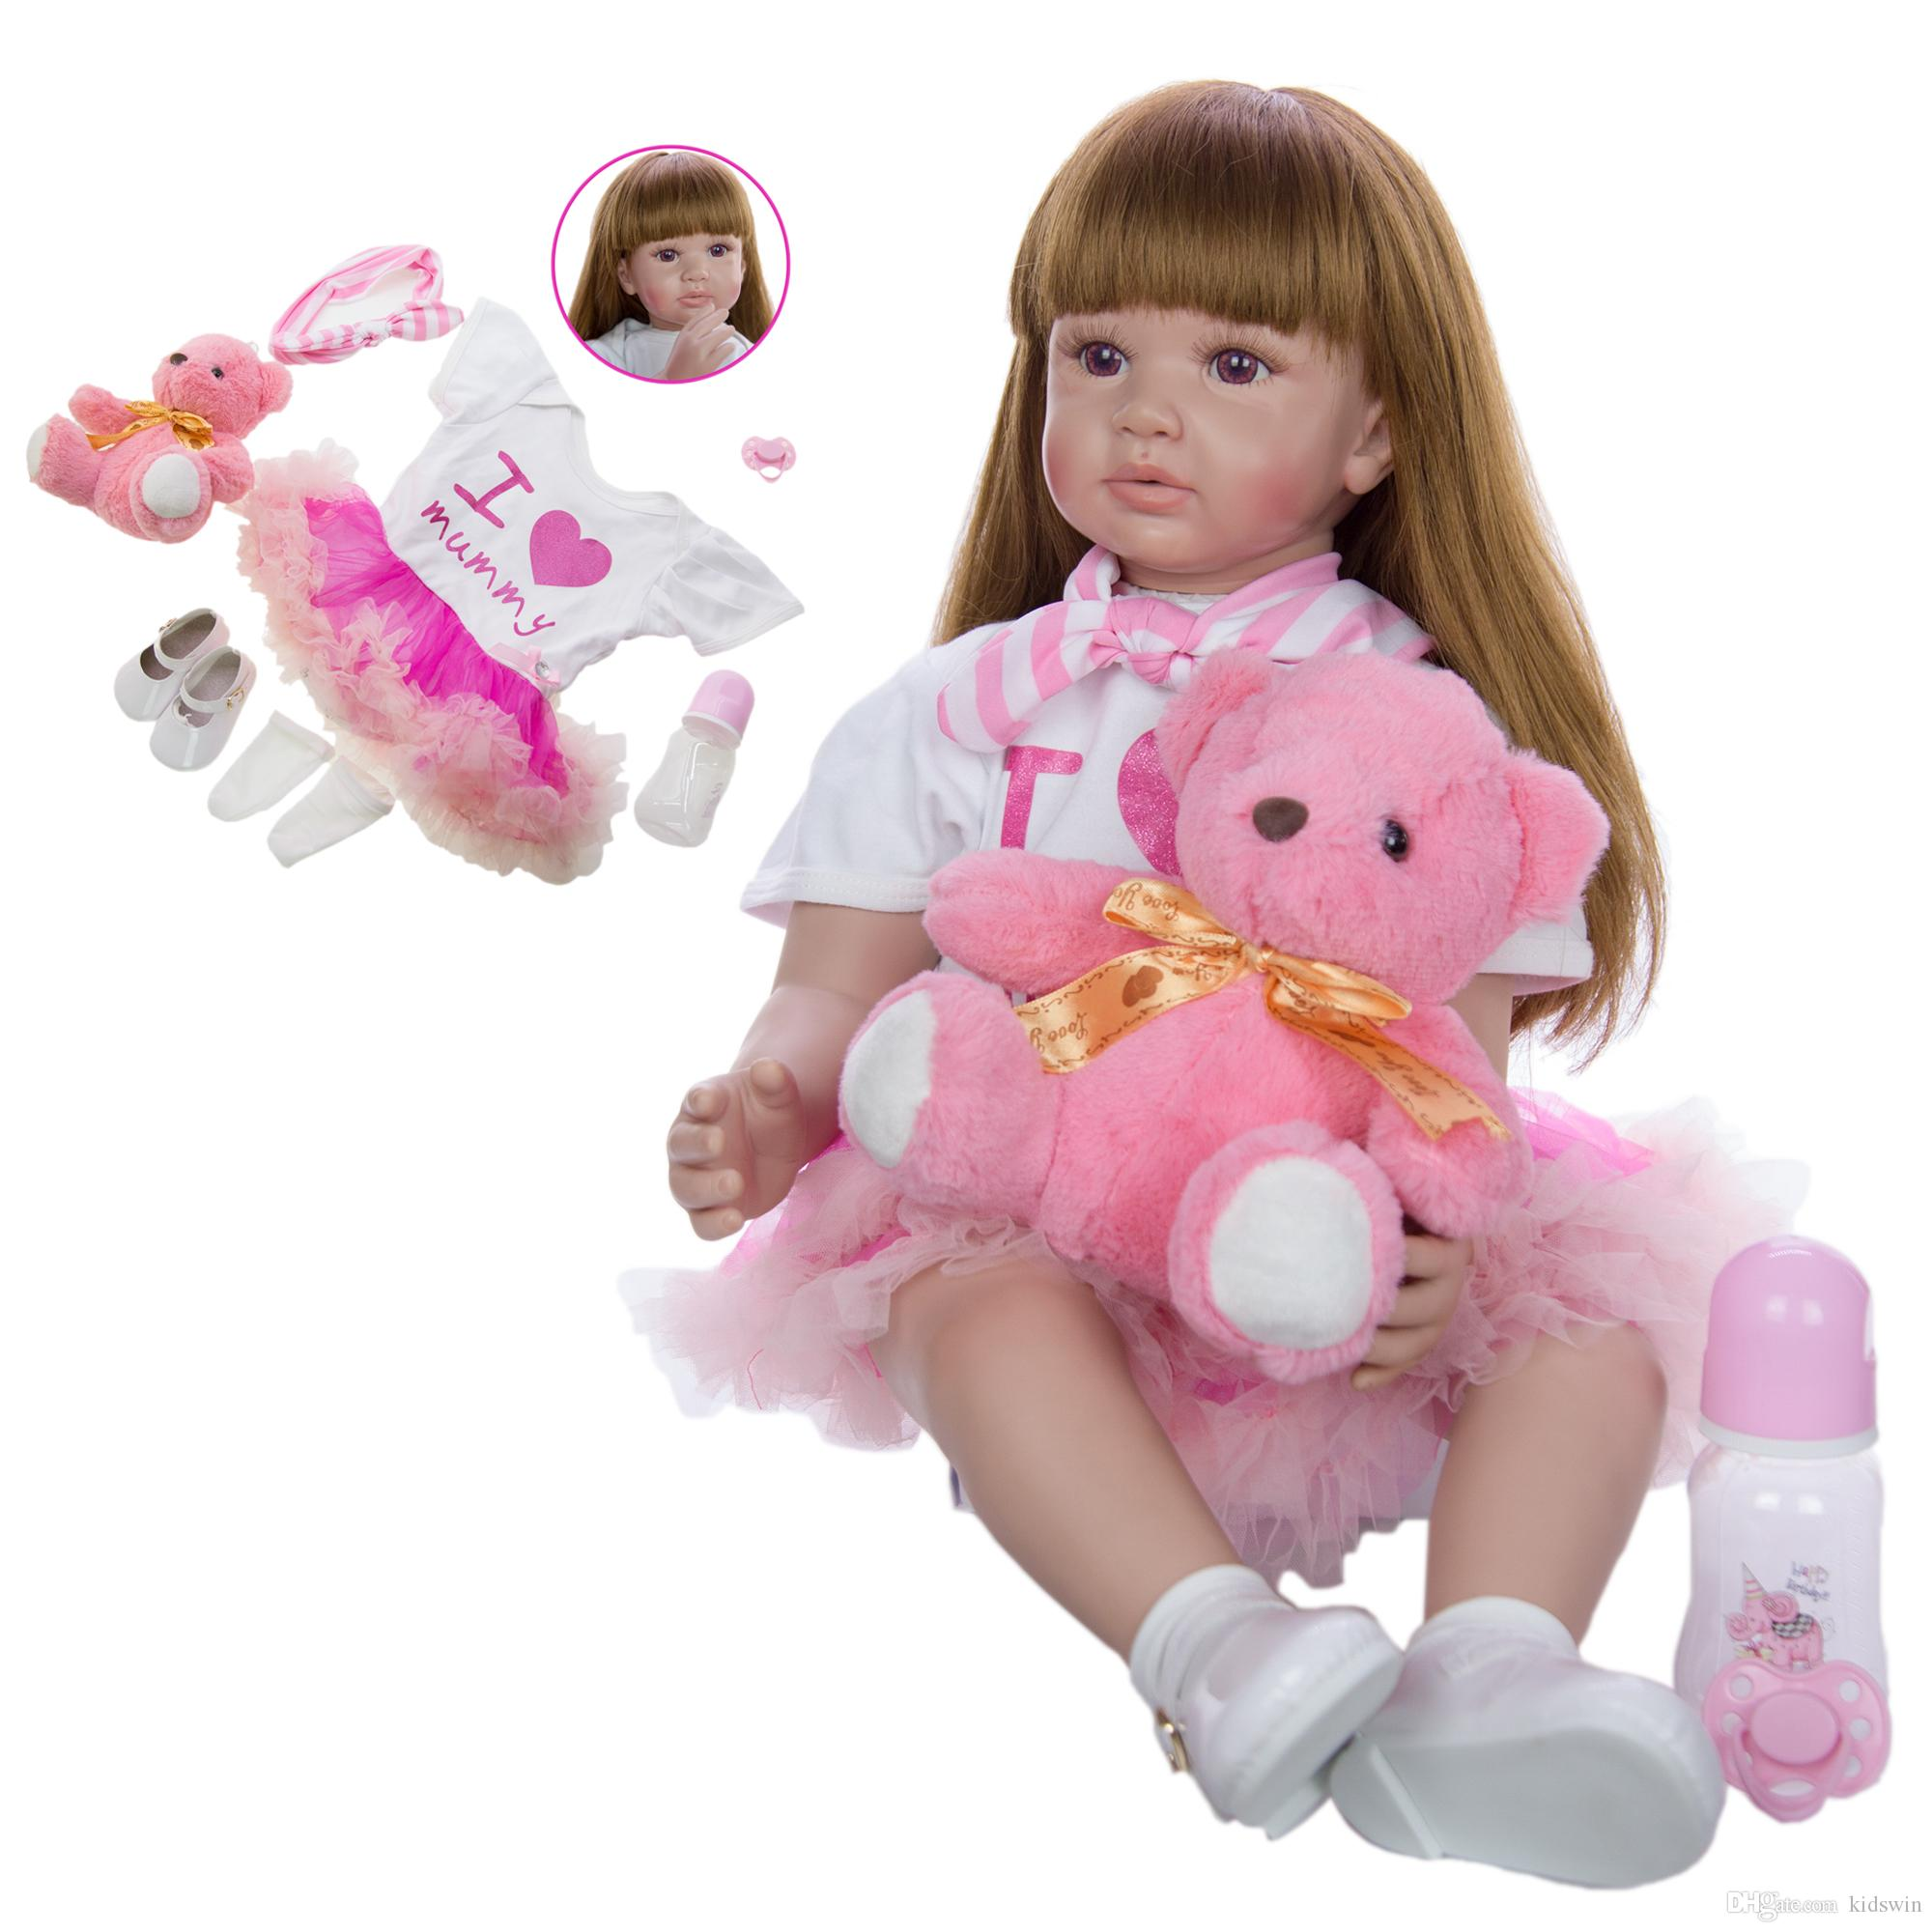 "2 Pieces 12/"" Vinyl Reborn Silicone Baby Doll Kids Sleeping Toy Bath Play Toy"